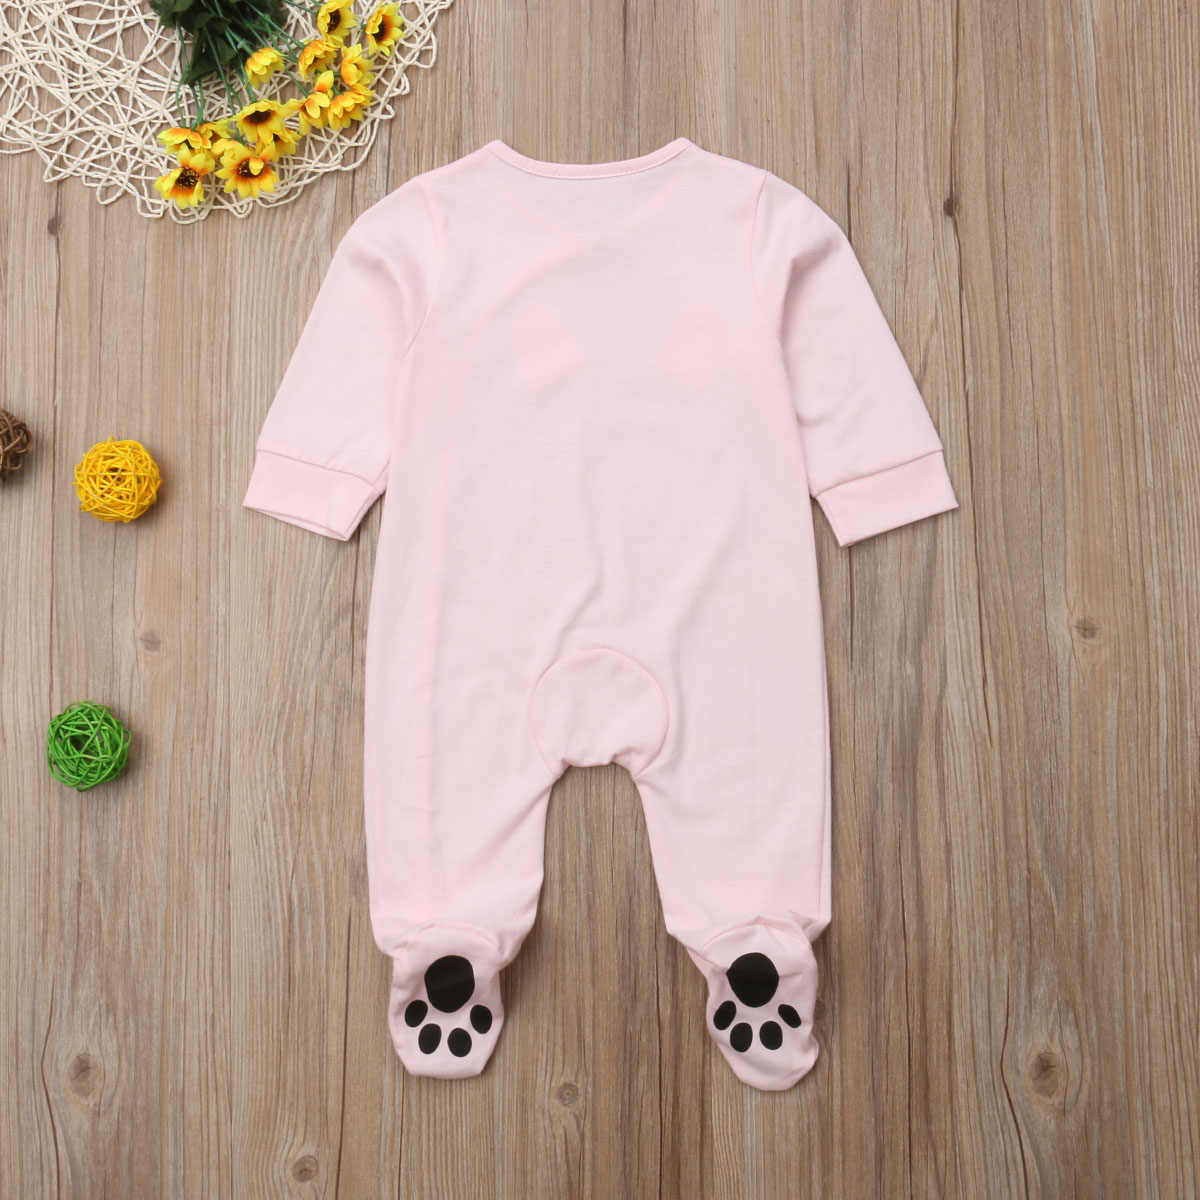 7b6a47978a5c Detail Feedback Questions about Brand NEW Infant Baby Girl Boys ...